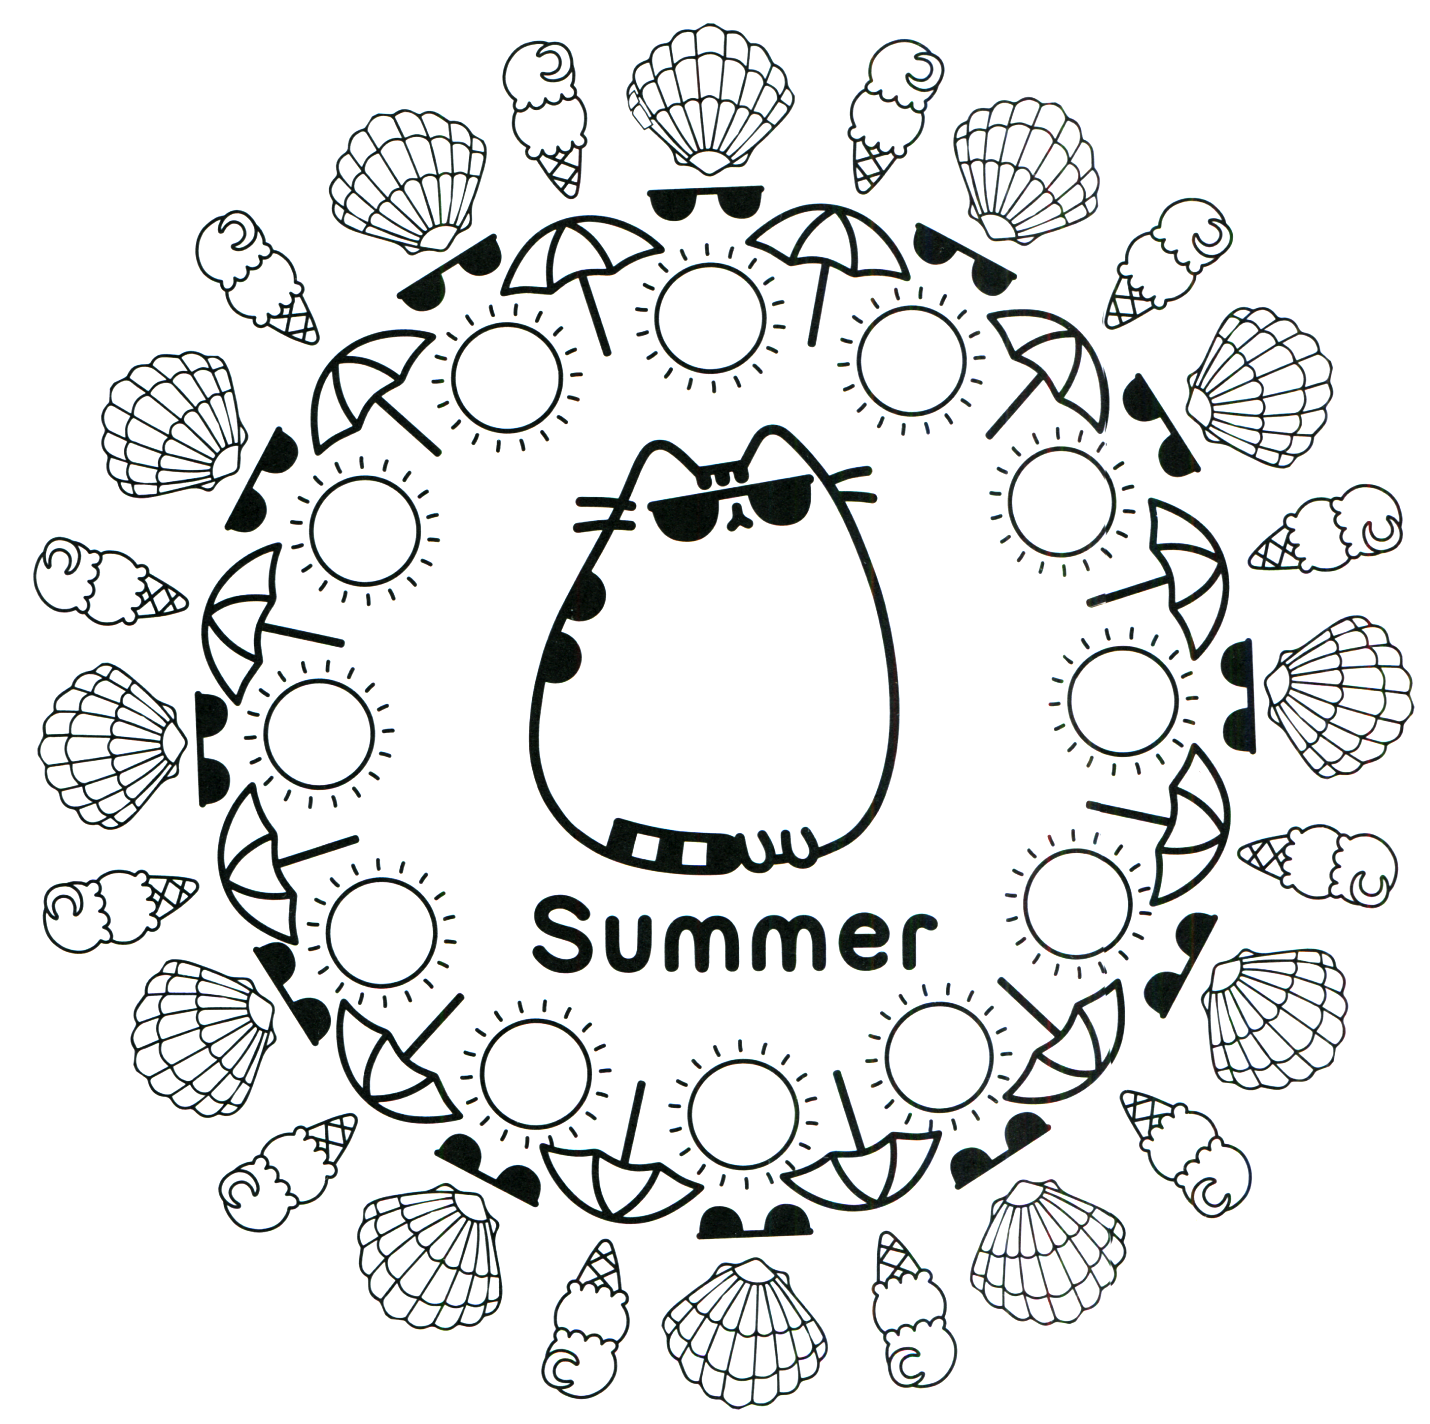 Pusheen Coloring Book Pusheen Pusheen The Cat Summer Coloring Pages Pusheen Coloring Pages Coloring Pages For Teenagers